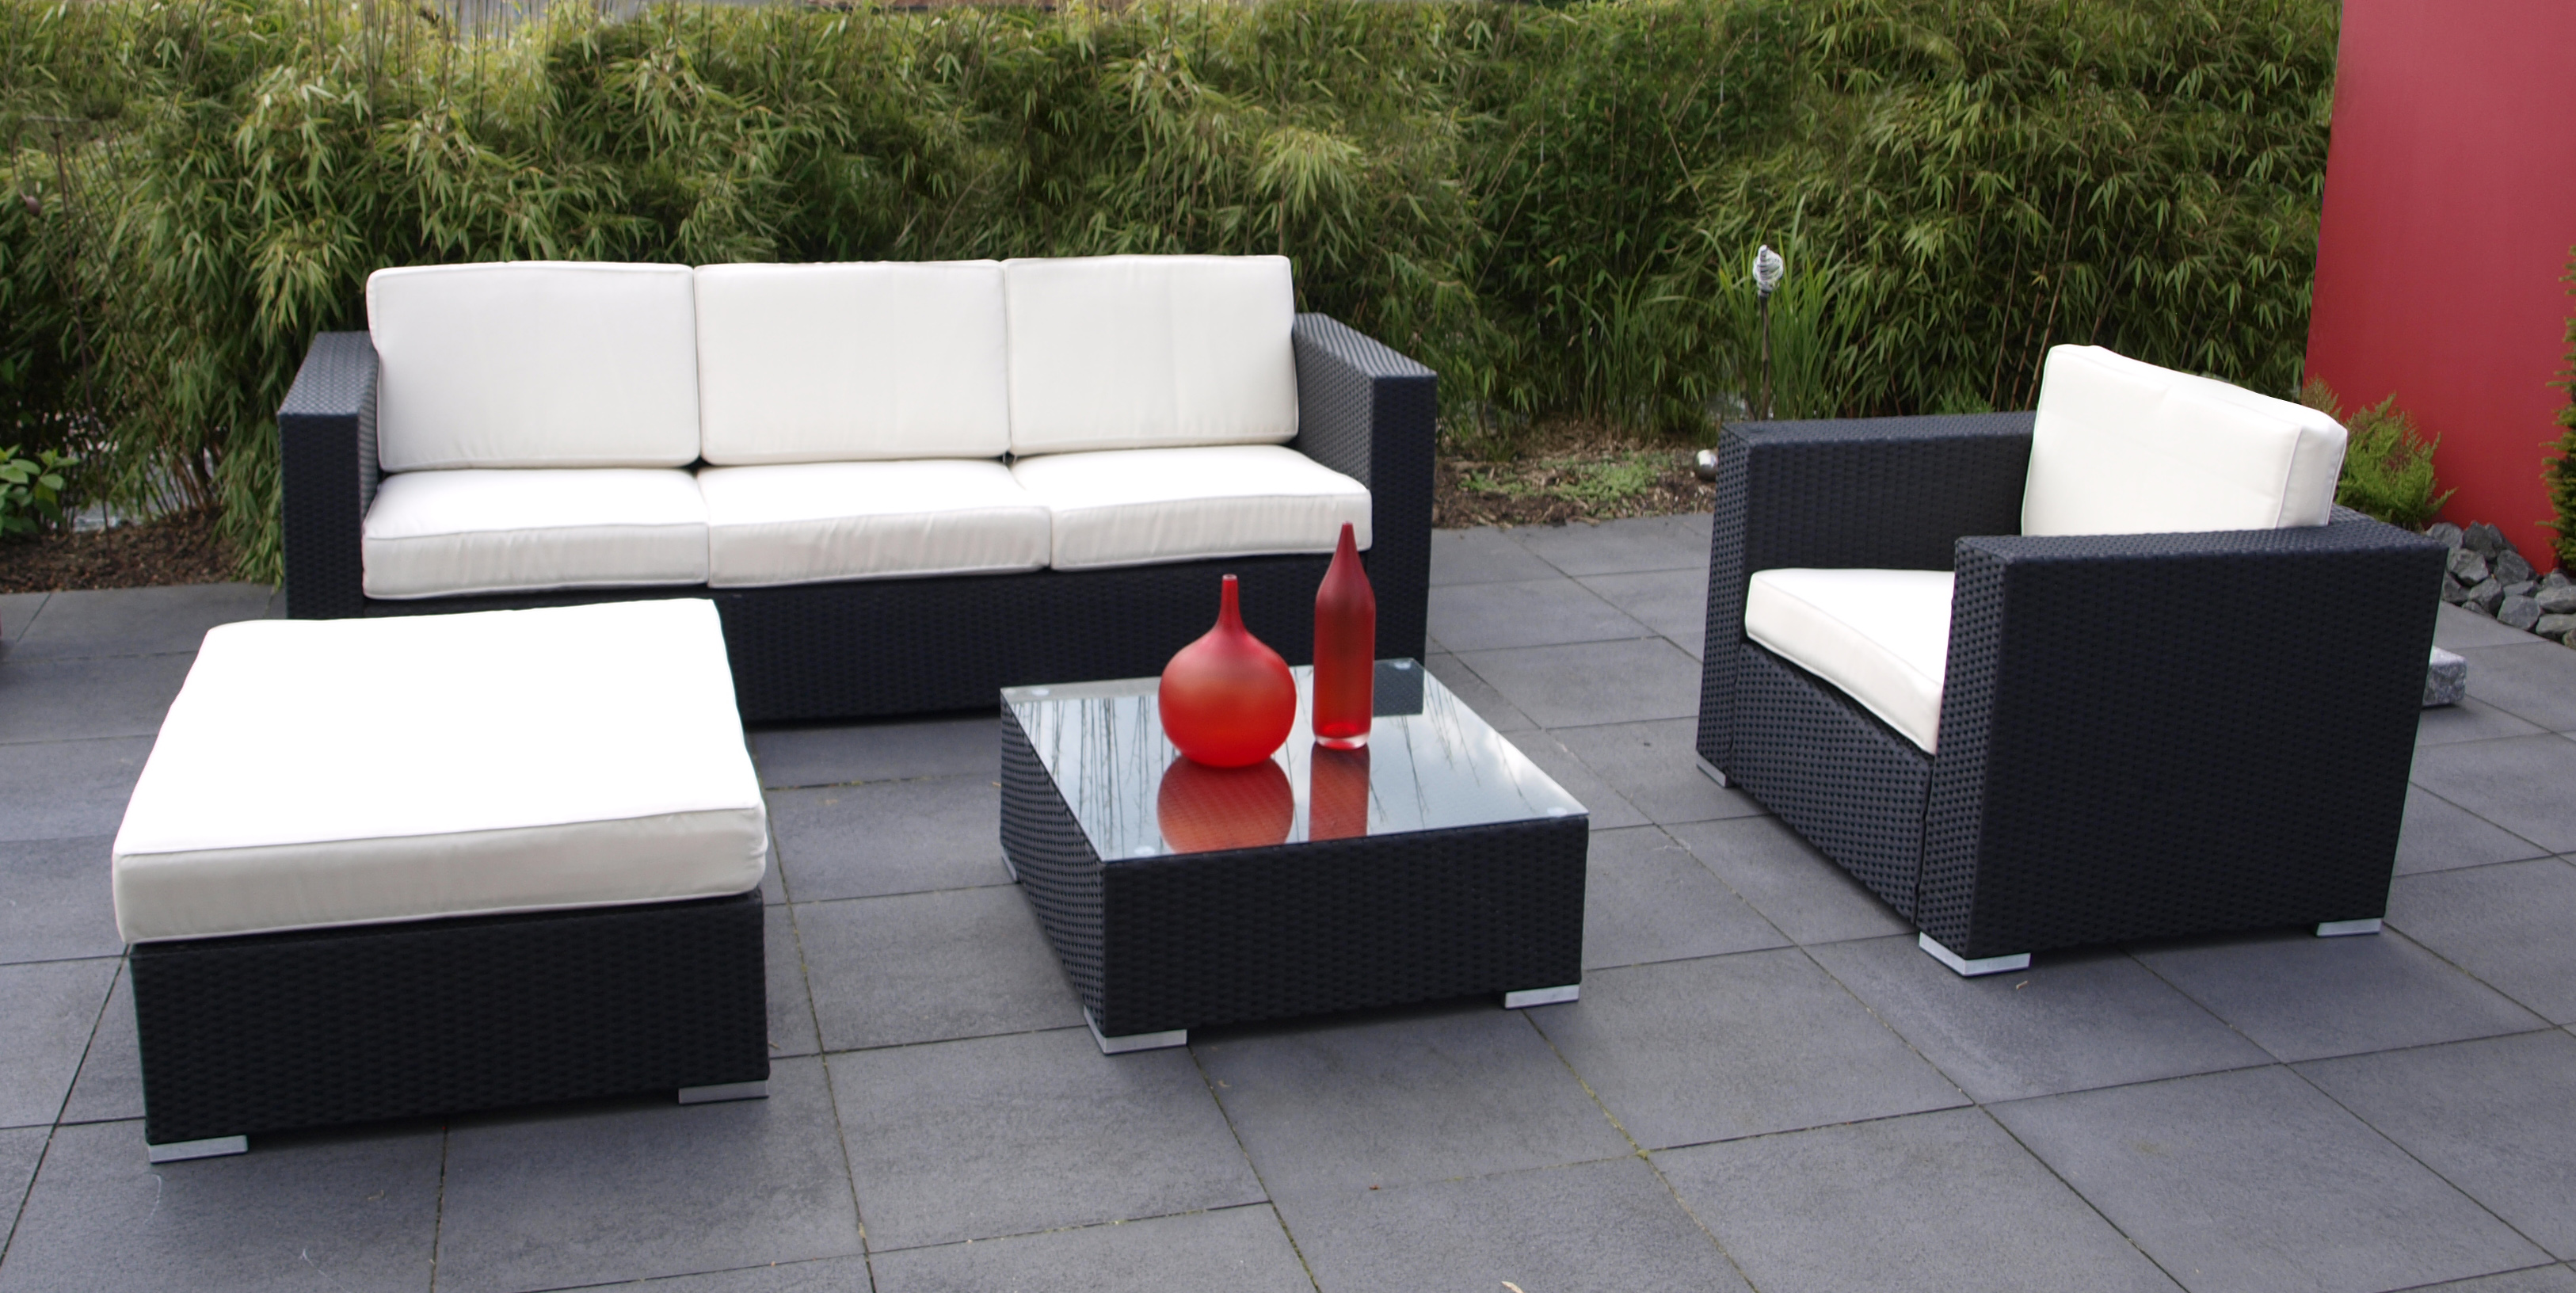 lounge set livorno 4 teilig garten terrasse balkon garnitur sitzgruppe m bel ebay. Black Bedroom Furniture Sets. Home Design Ideas